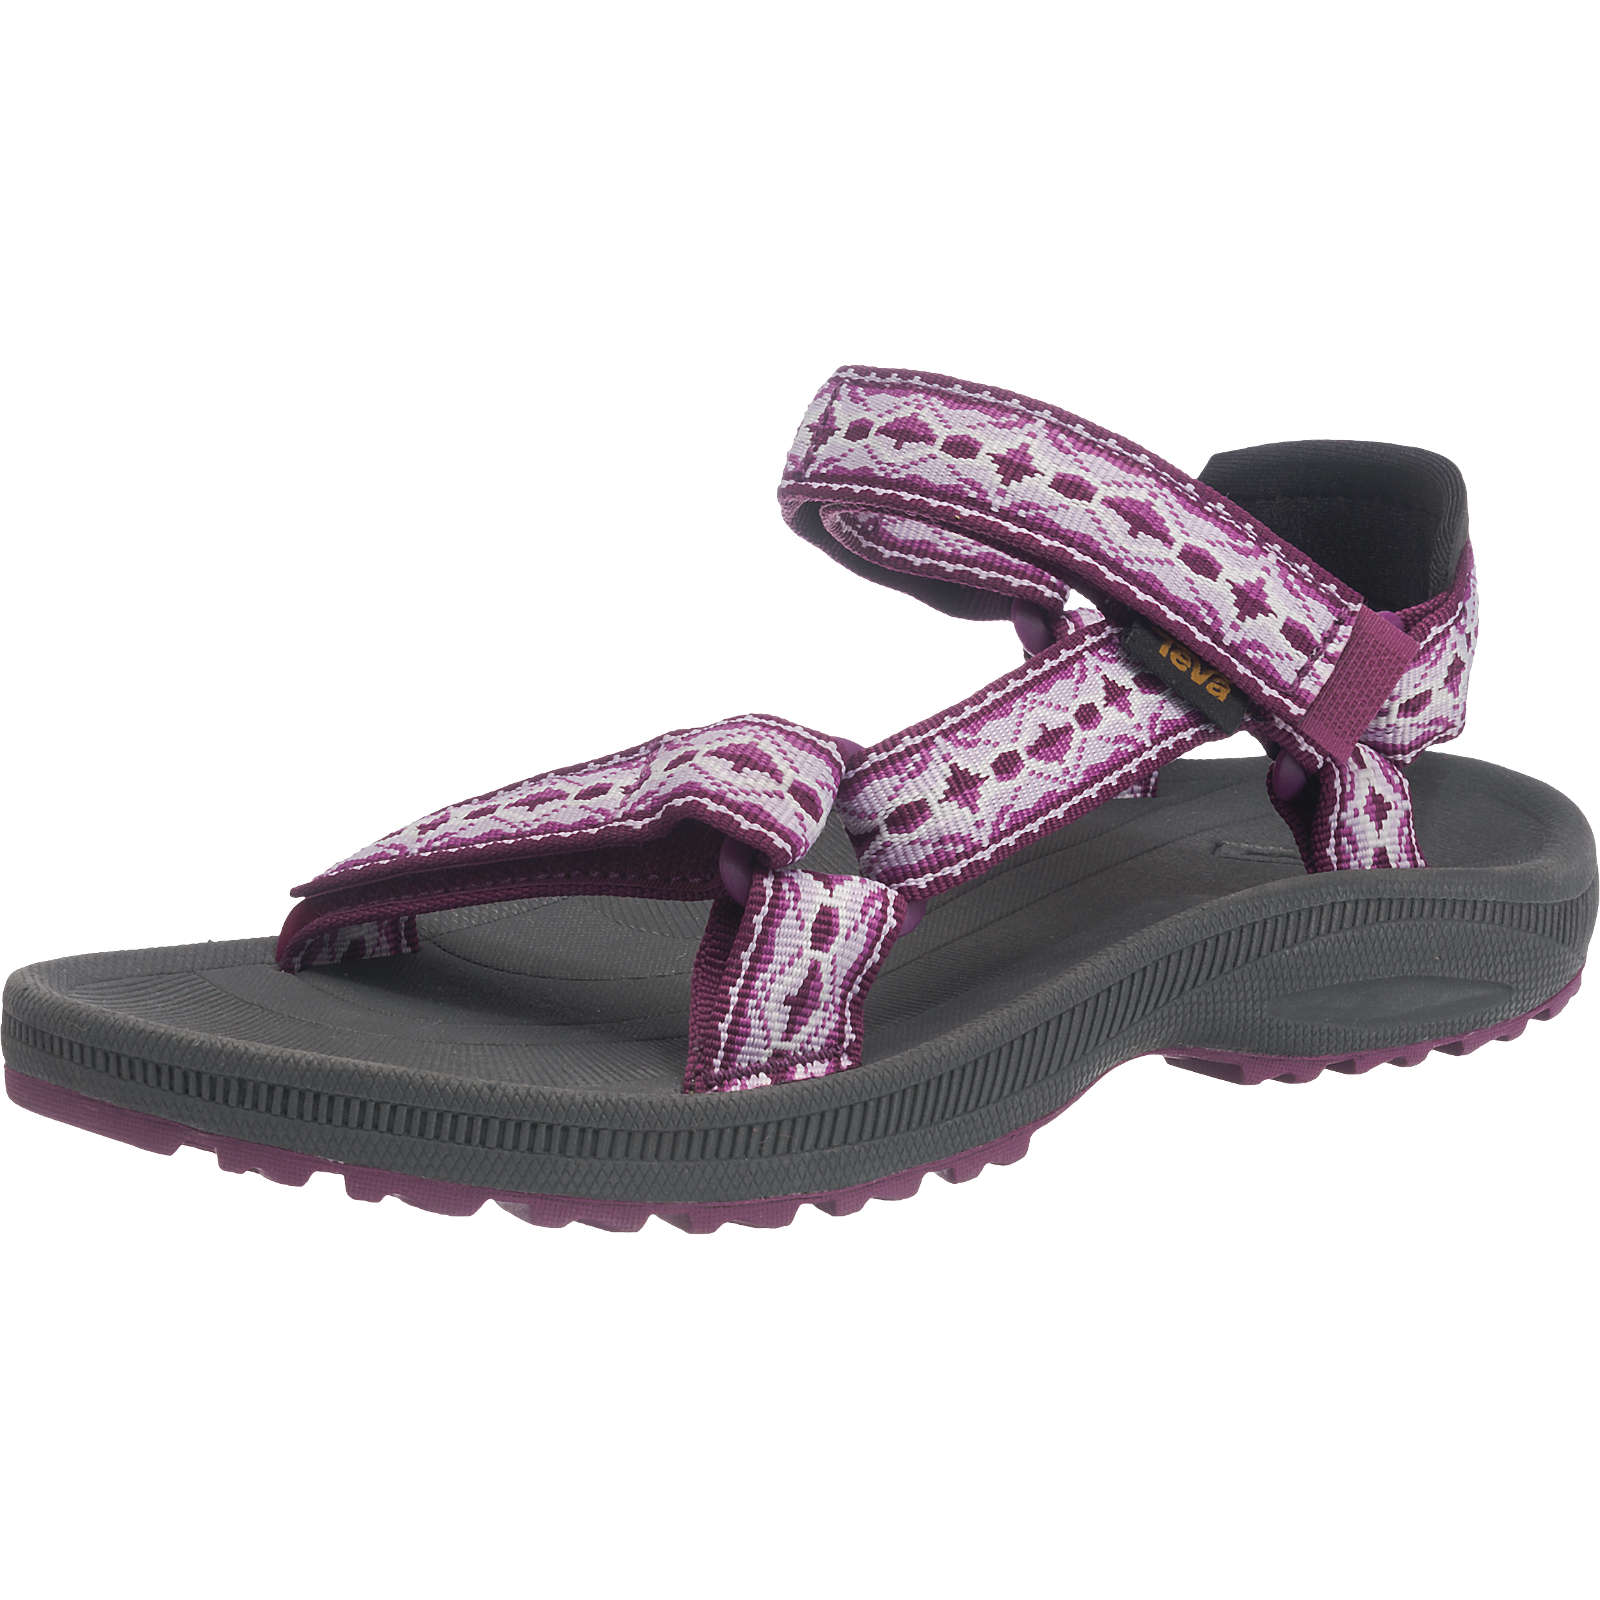 Teva Winsted Outdoorsandalen lila-kombi Damen Gr. 38